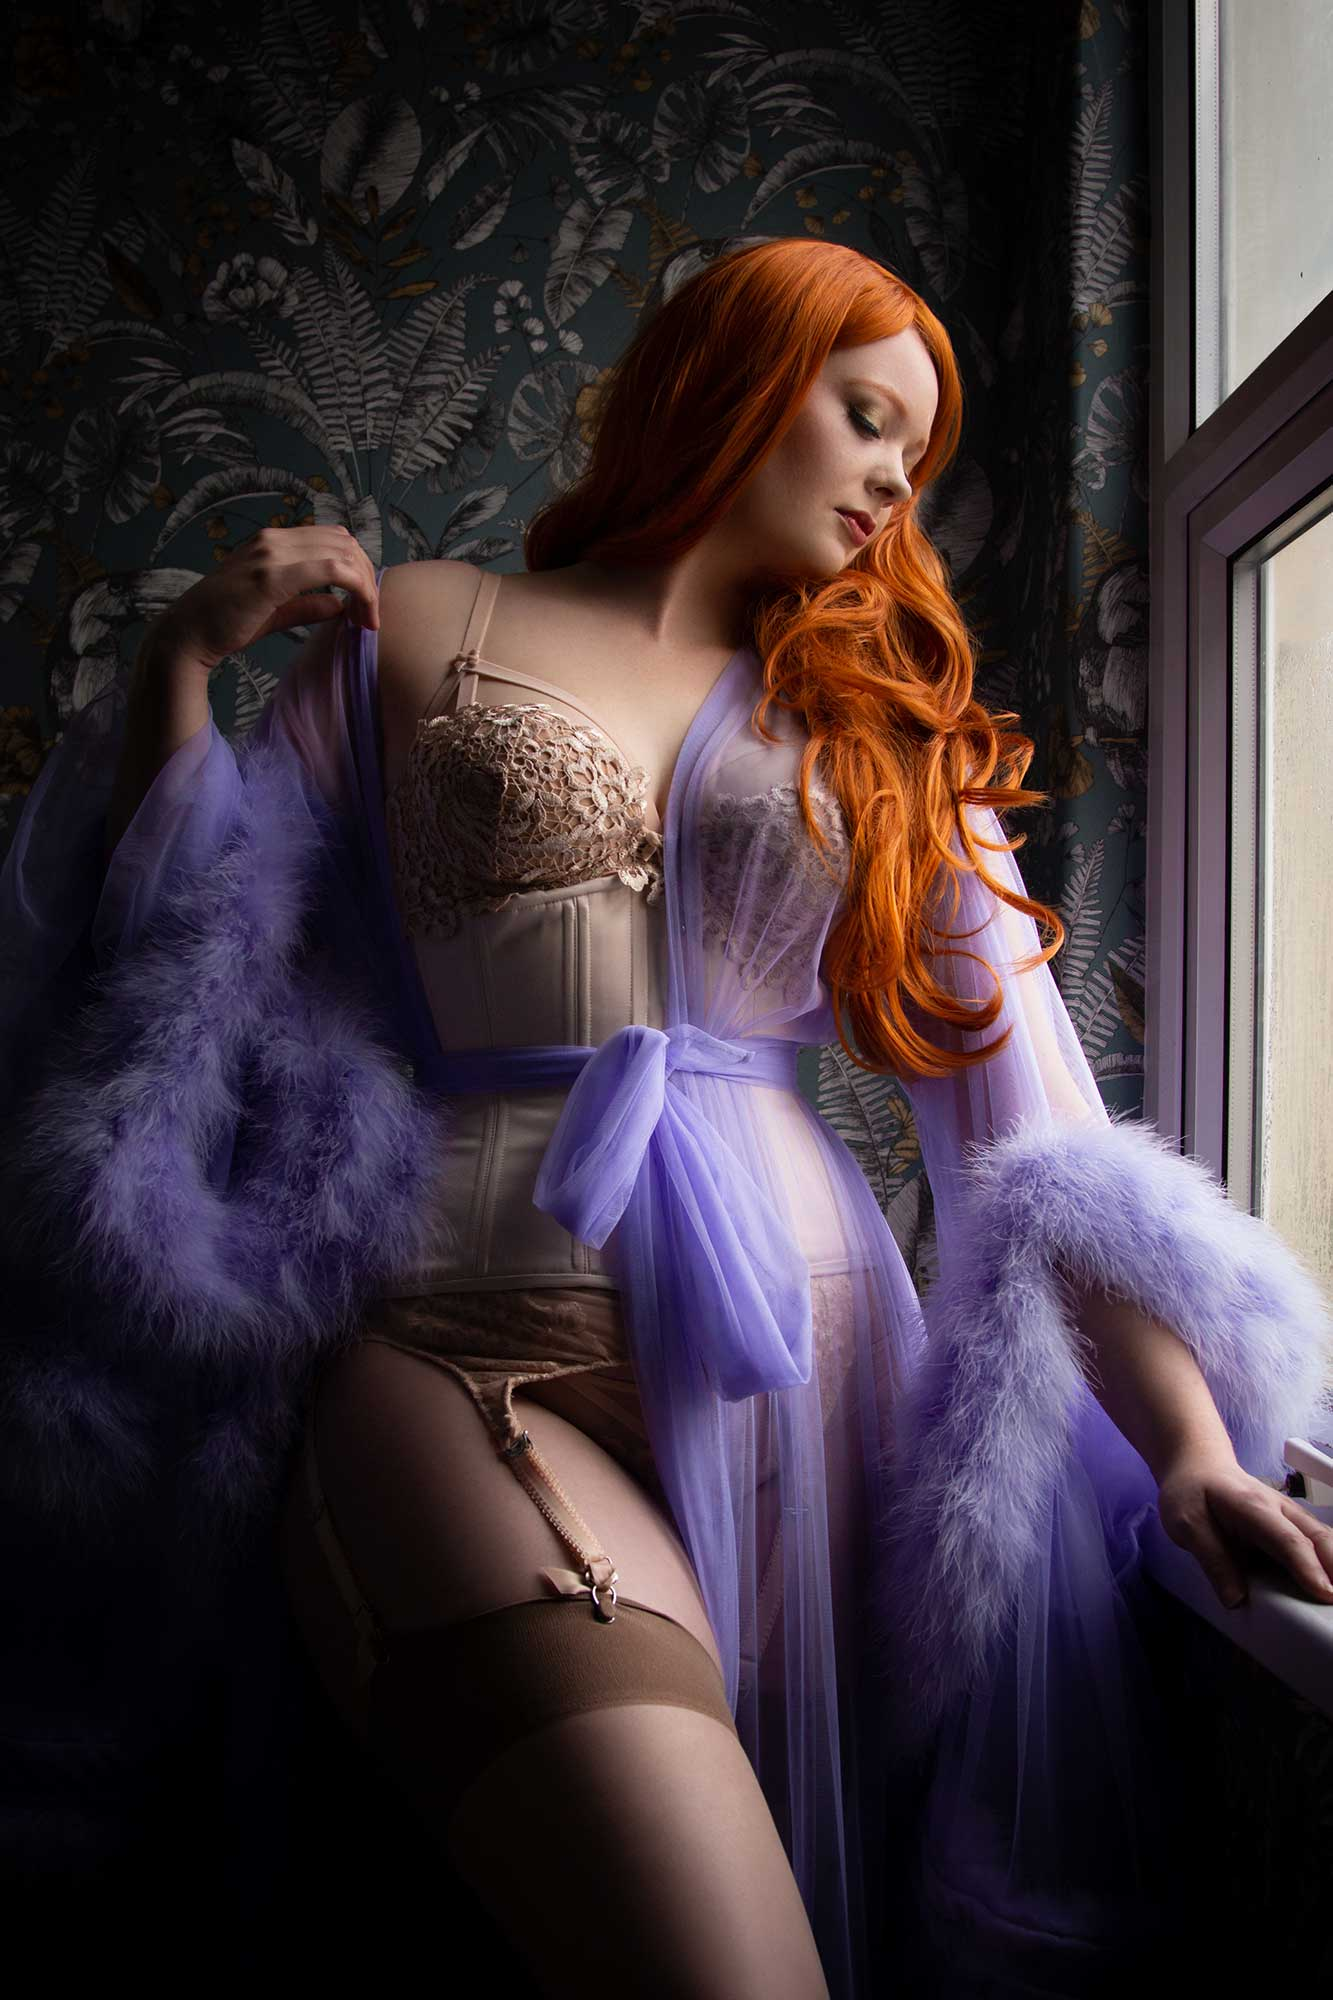 Dominatrix & Online Content Creator The Siren talks about her virtual boudoir shoot with Tigz Rice